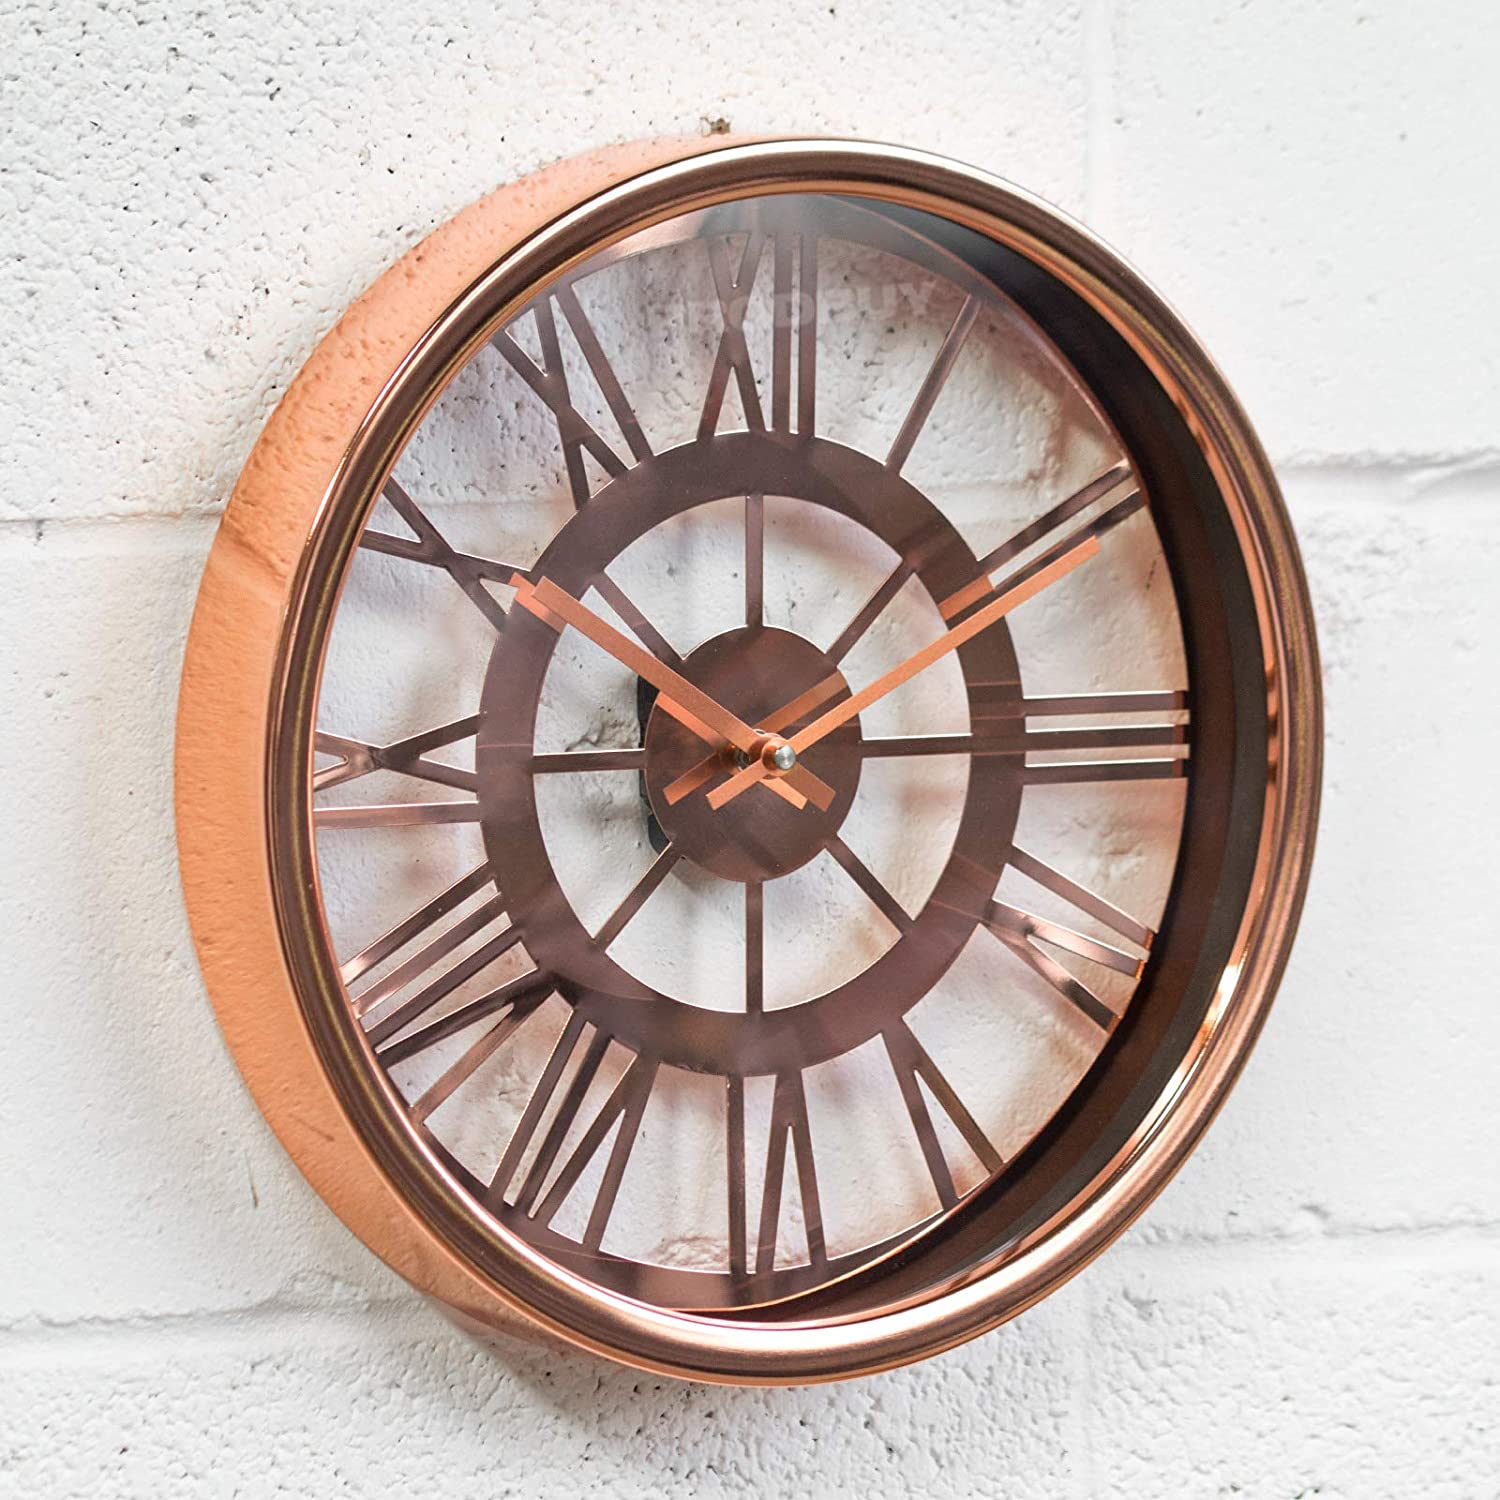 Prodbuy 35cm Transparent pink gold Copper Metal Wall Clock (Requires 2 x AA batteries)